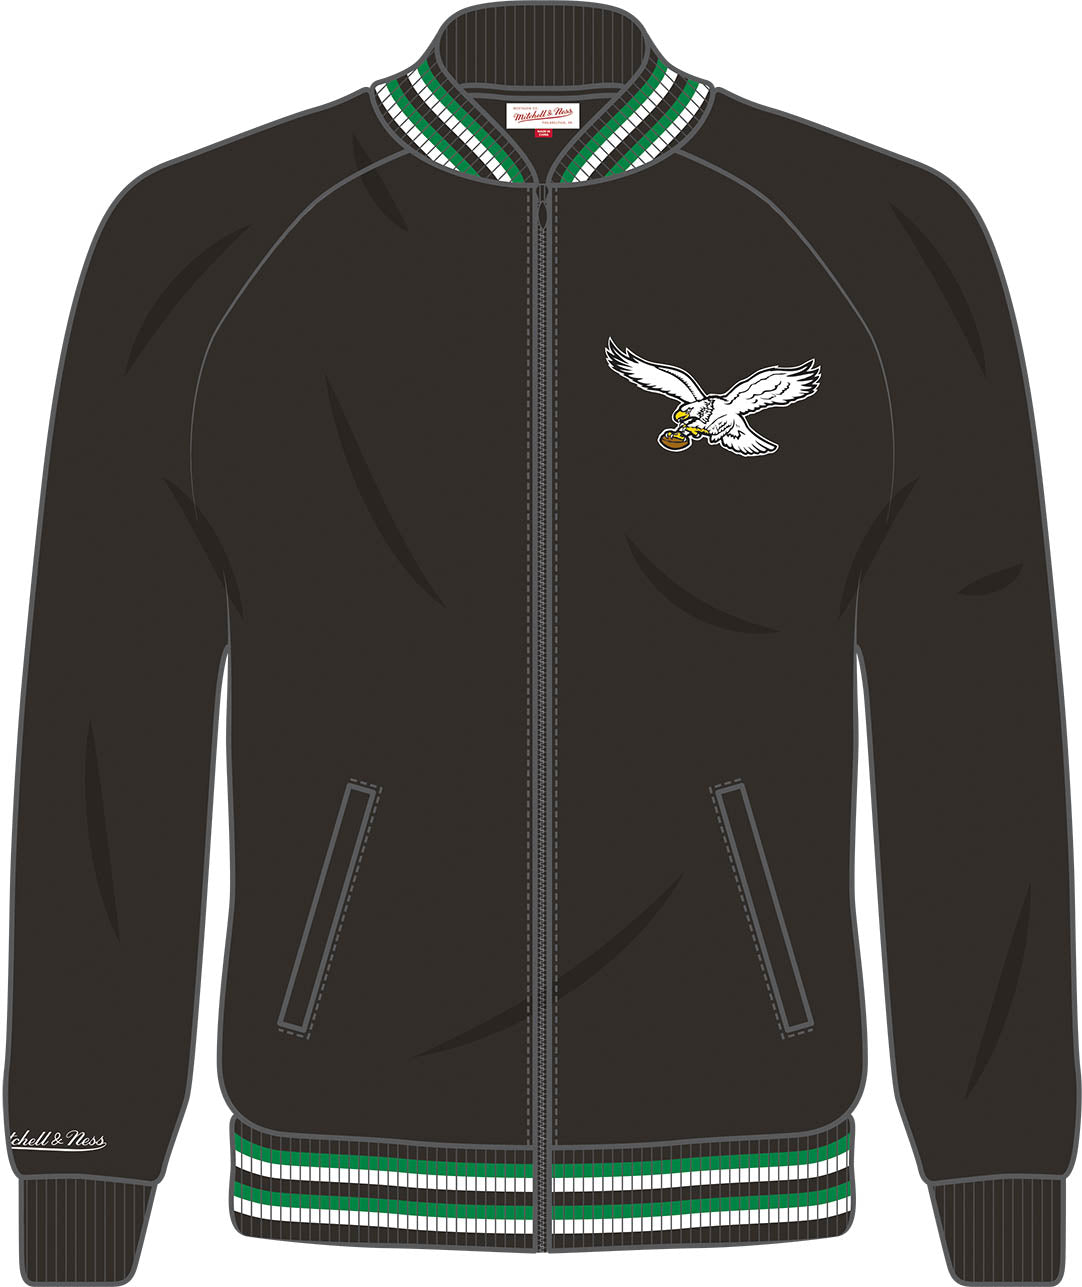 Philadelphia Eagles Top Prospect Track Jacket